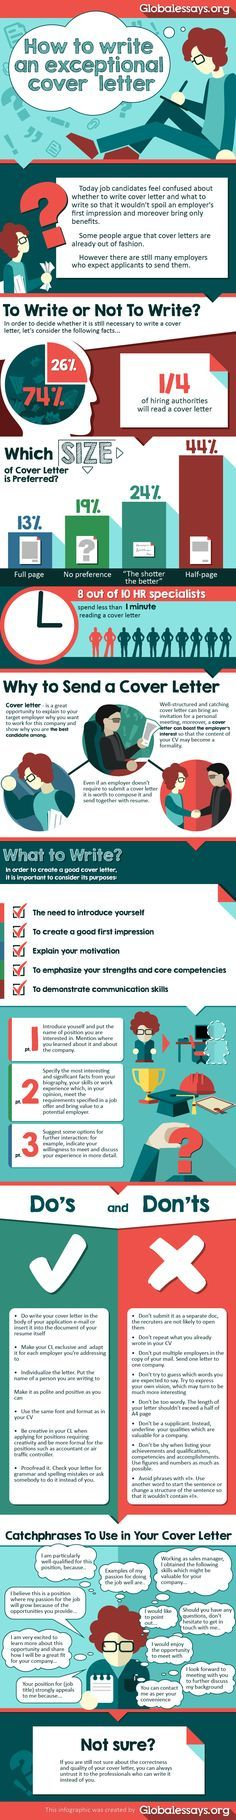 How To Write An Exceptional Cover Letter Career, Job search and - cover letter job search